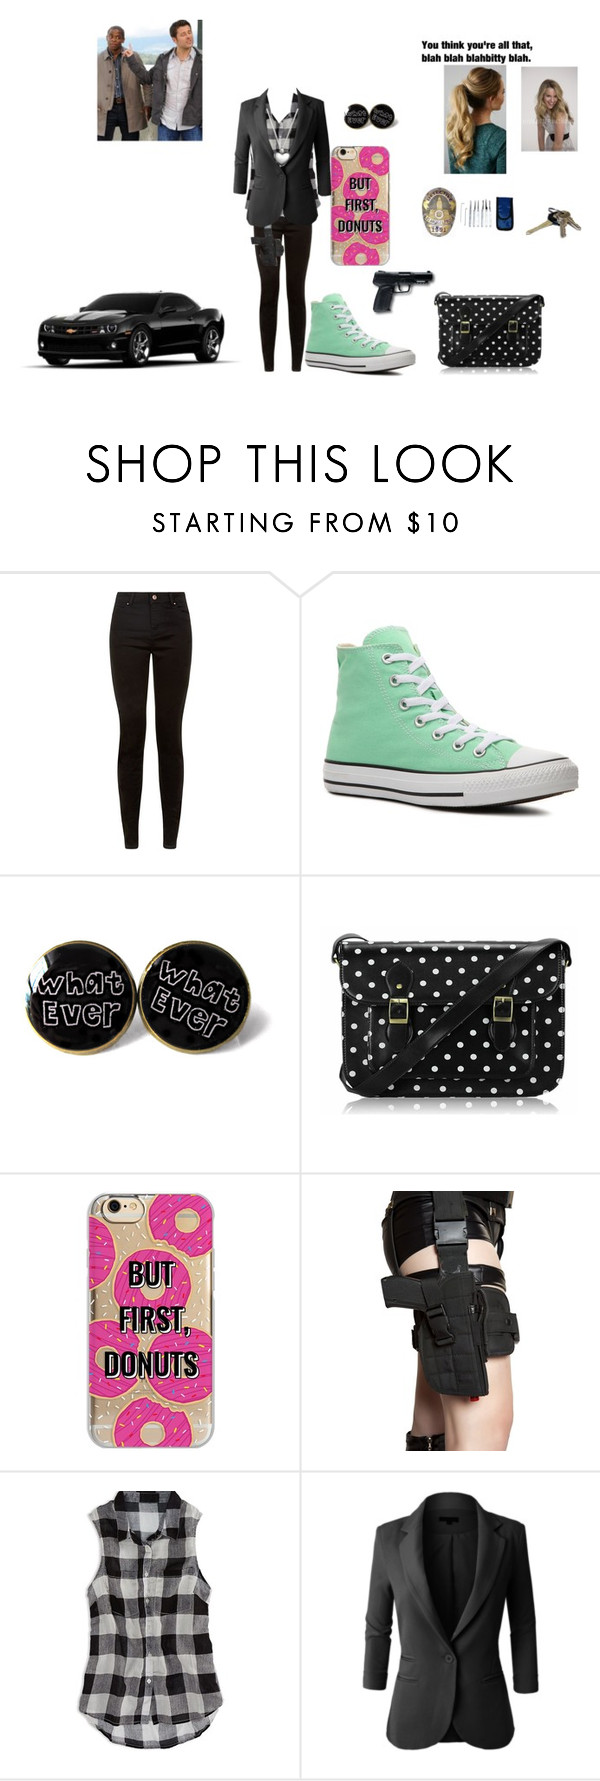 """""""Sharlene meeting Shawn and Gus in HQ"""" by queenofwordsandplots ❤ liked on Polyvore featuring Converse, FC Select Vegan Bags, All Black, Avon, Agent 18, American Eagle Outfitters, LE3NO and Pandora"""